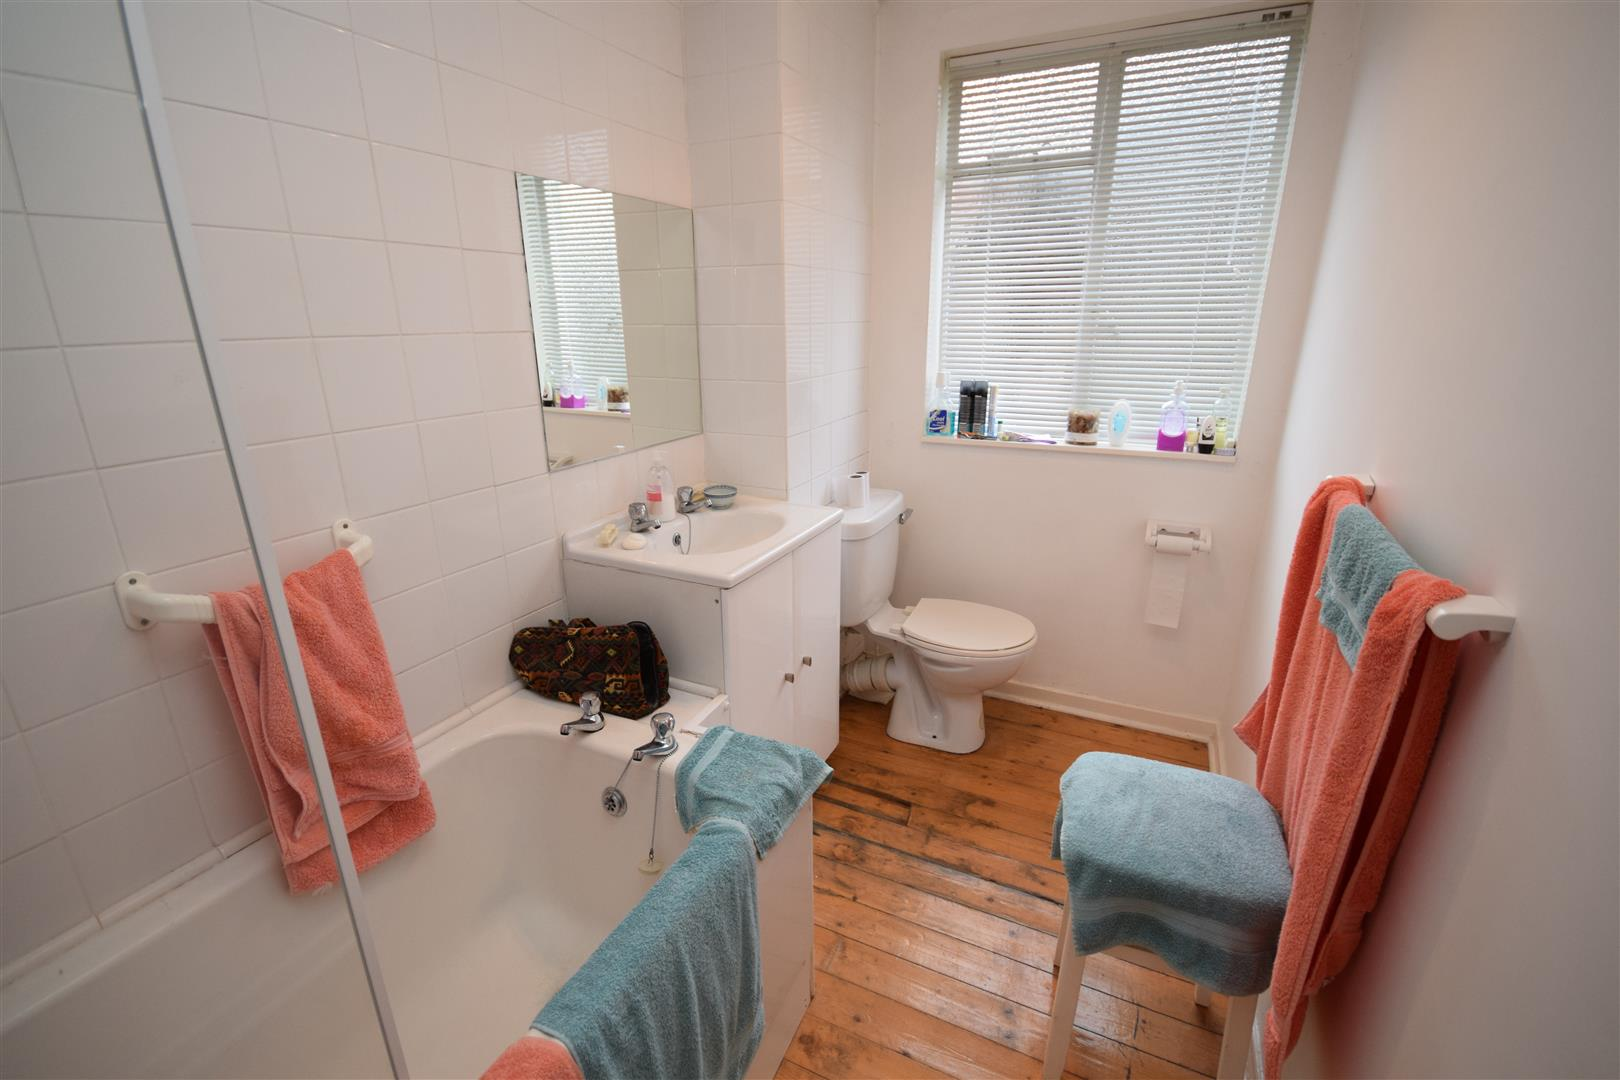 7A, Stormont Street, Perth, Perthshire, PH1 5NW, UK